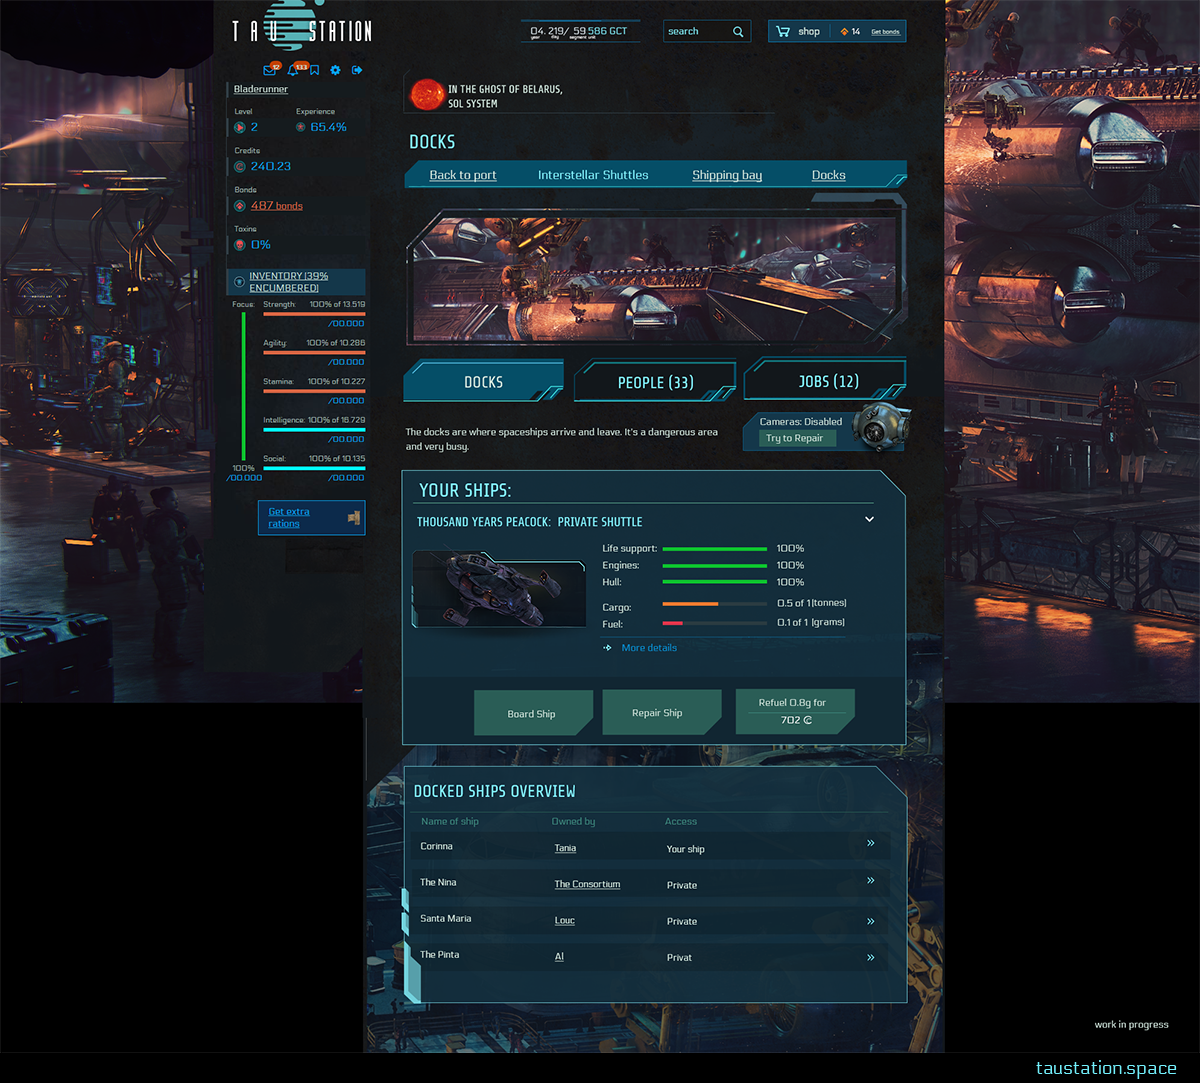 The UI of the Docks: Details of your ship are shown, plus a list of all ships docked here at Daedalus station.